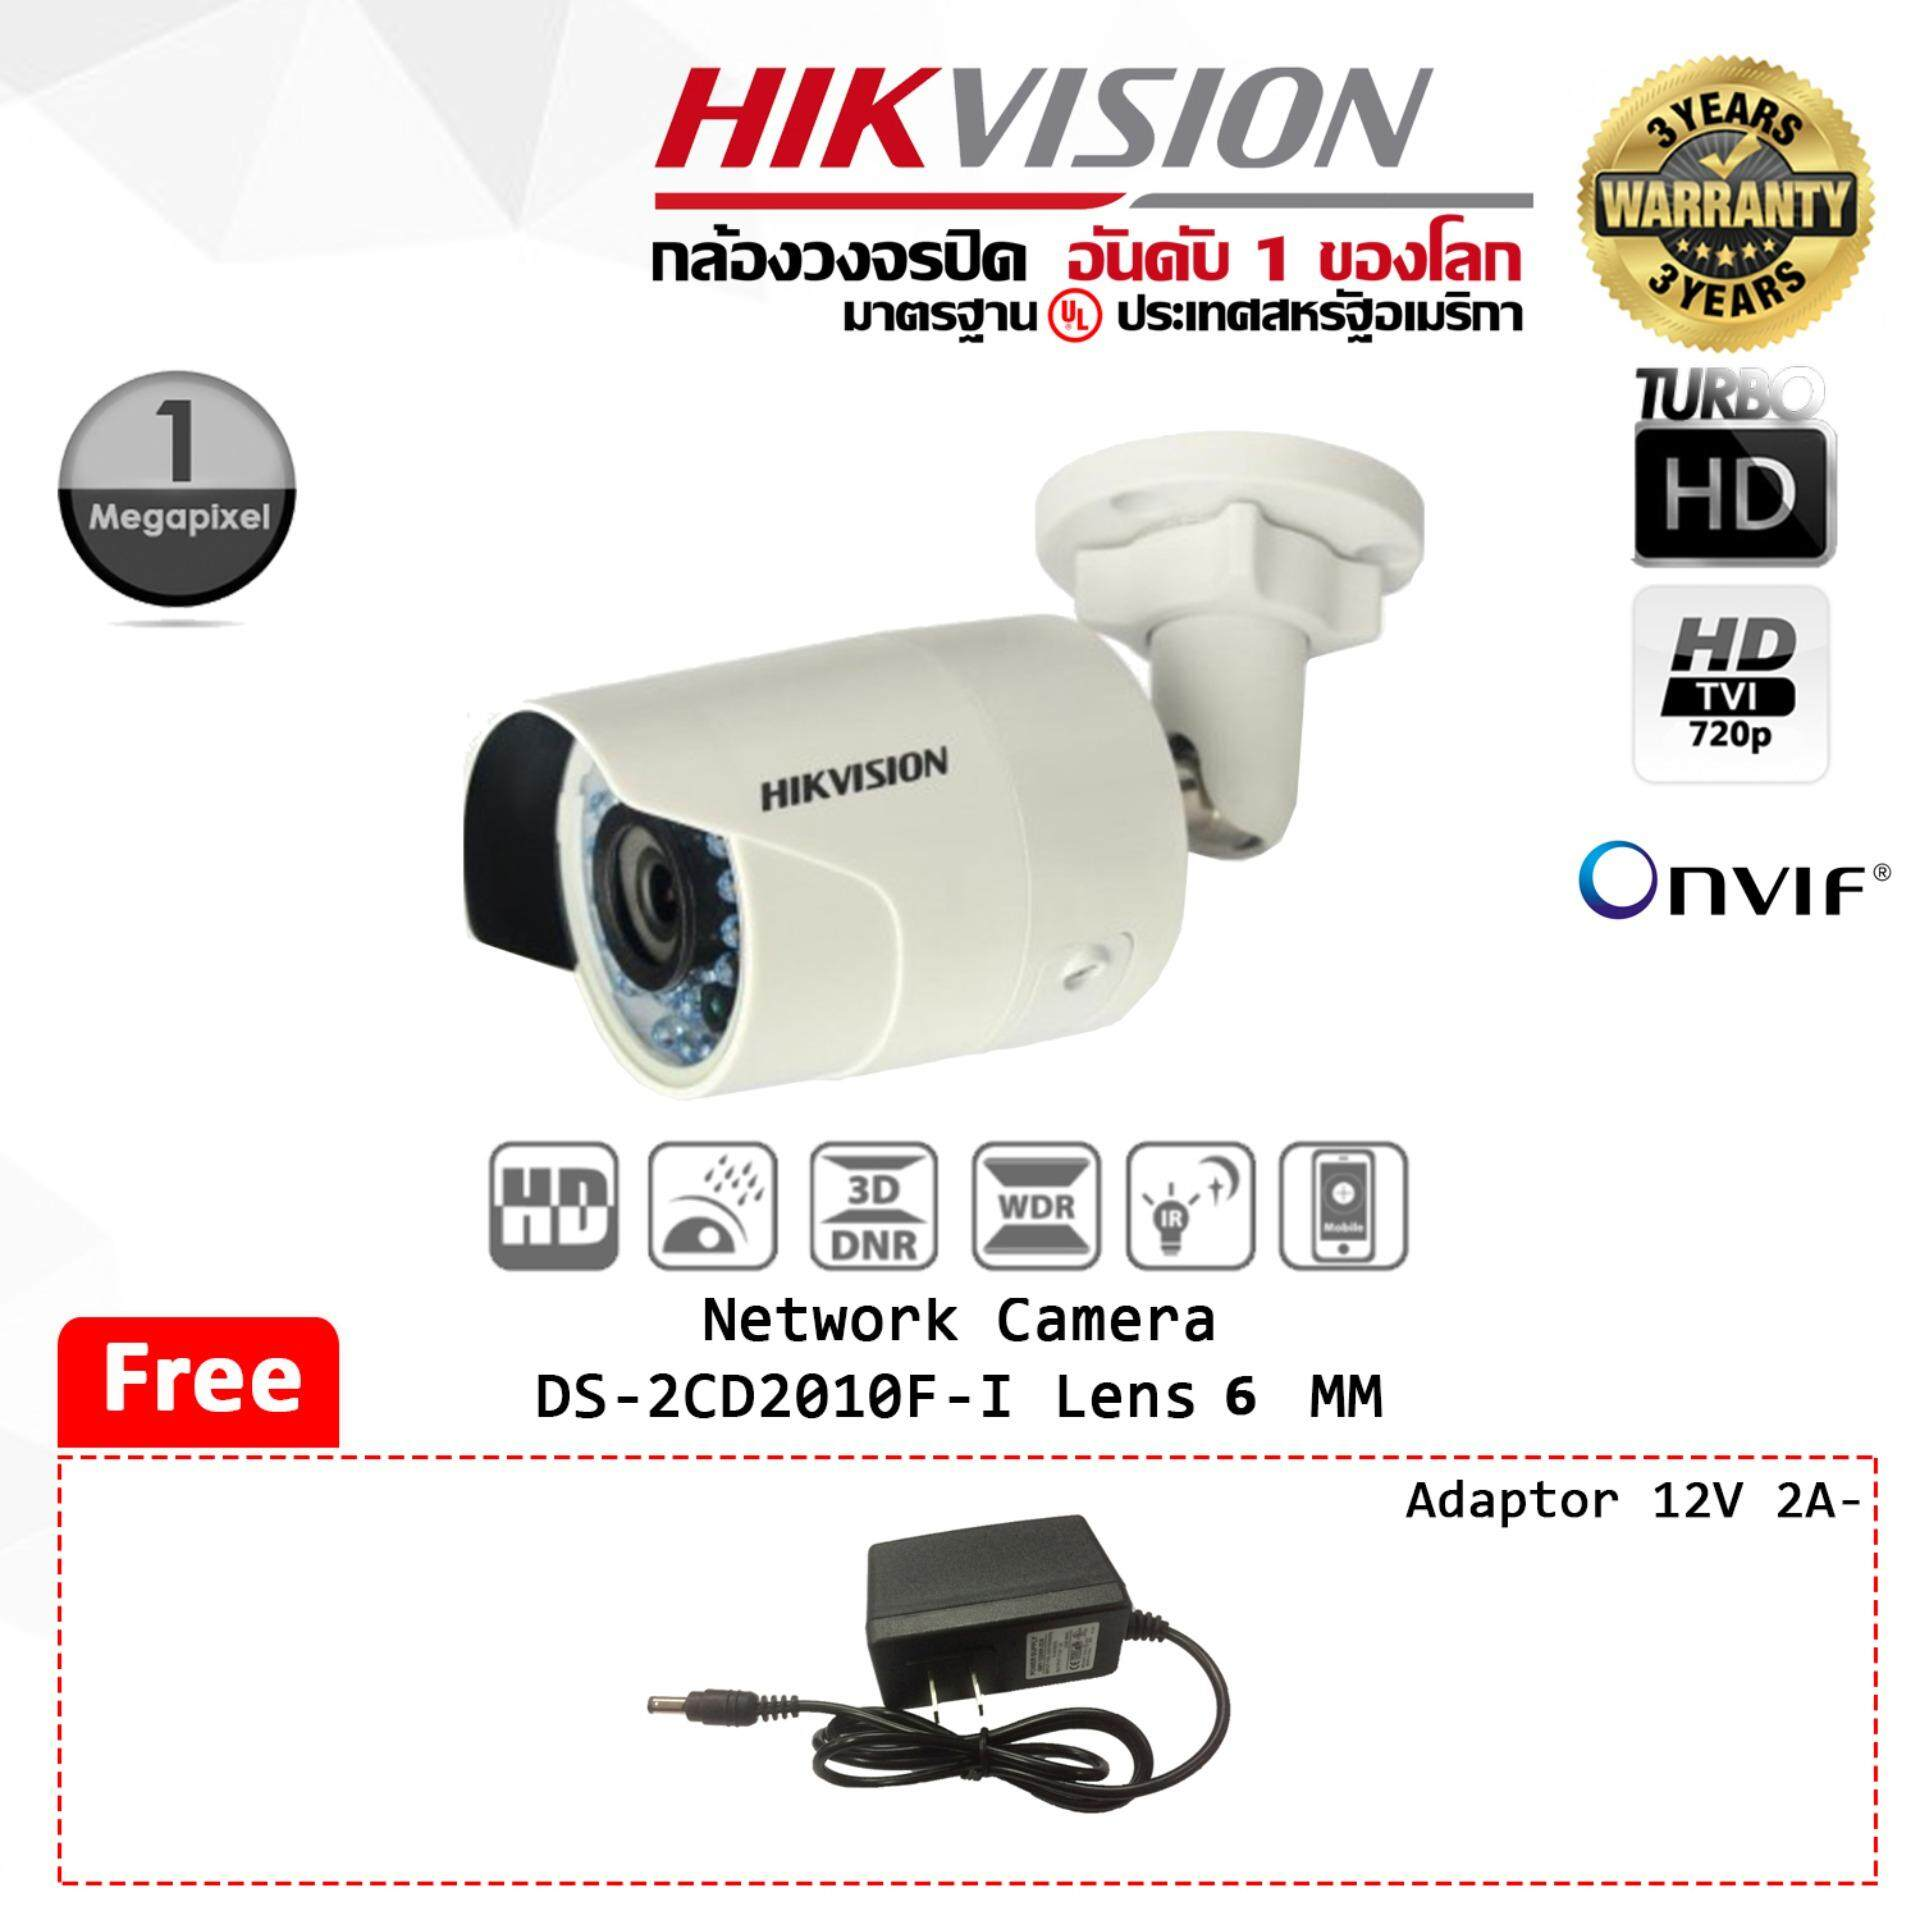 ซื้อ กล้องวงจรปิด Hikvision Network Camera Ds 2Cd2010F I 1 3 Mp Ir Mini Bullet Camera Lens 6 Mm Ip ฟรี Adaptor 12V 2A Kenpro ใหม่